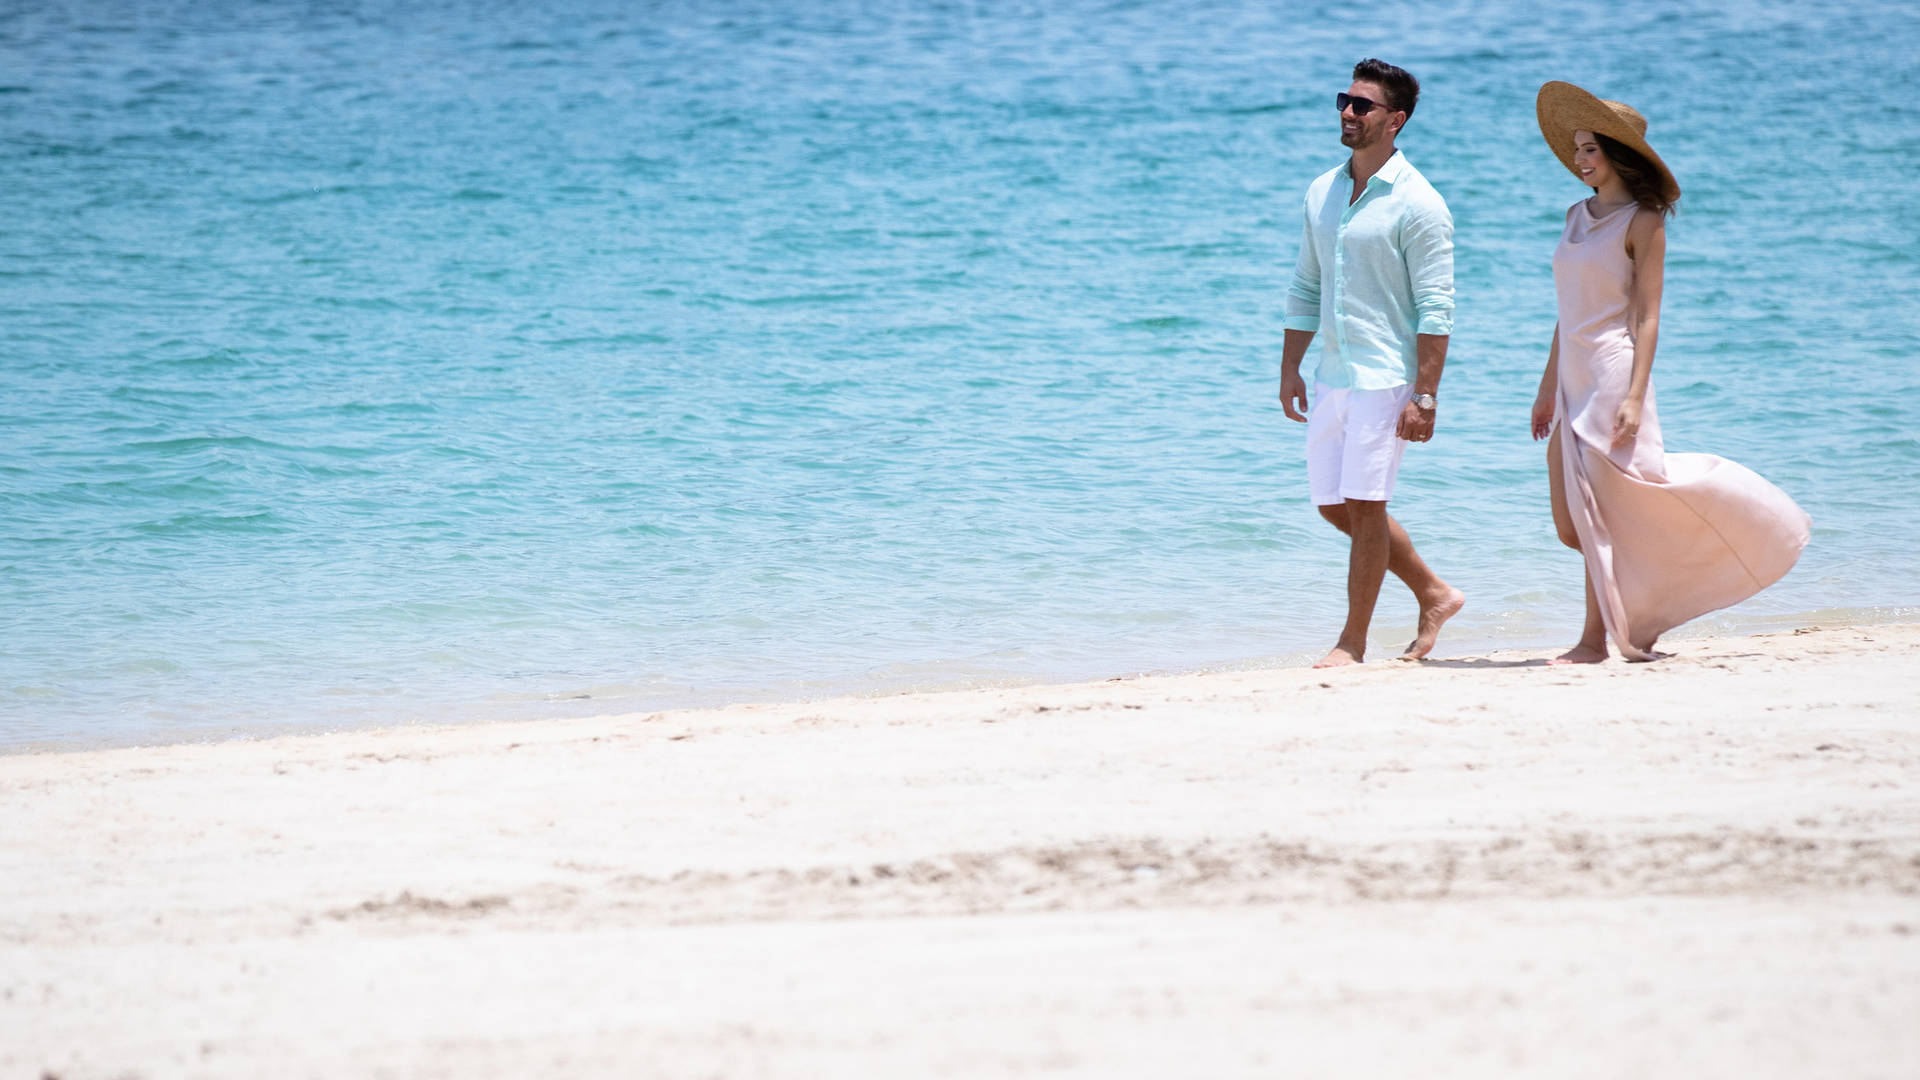 Wearing long sleeved clothing on beach achieve perfect summer skin